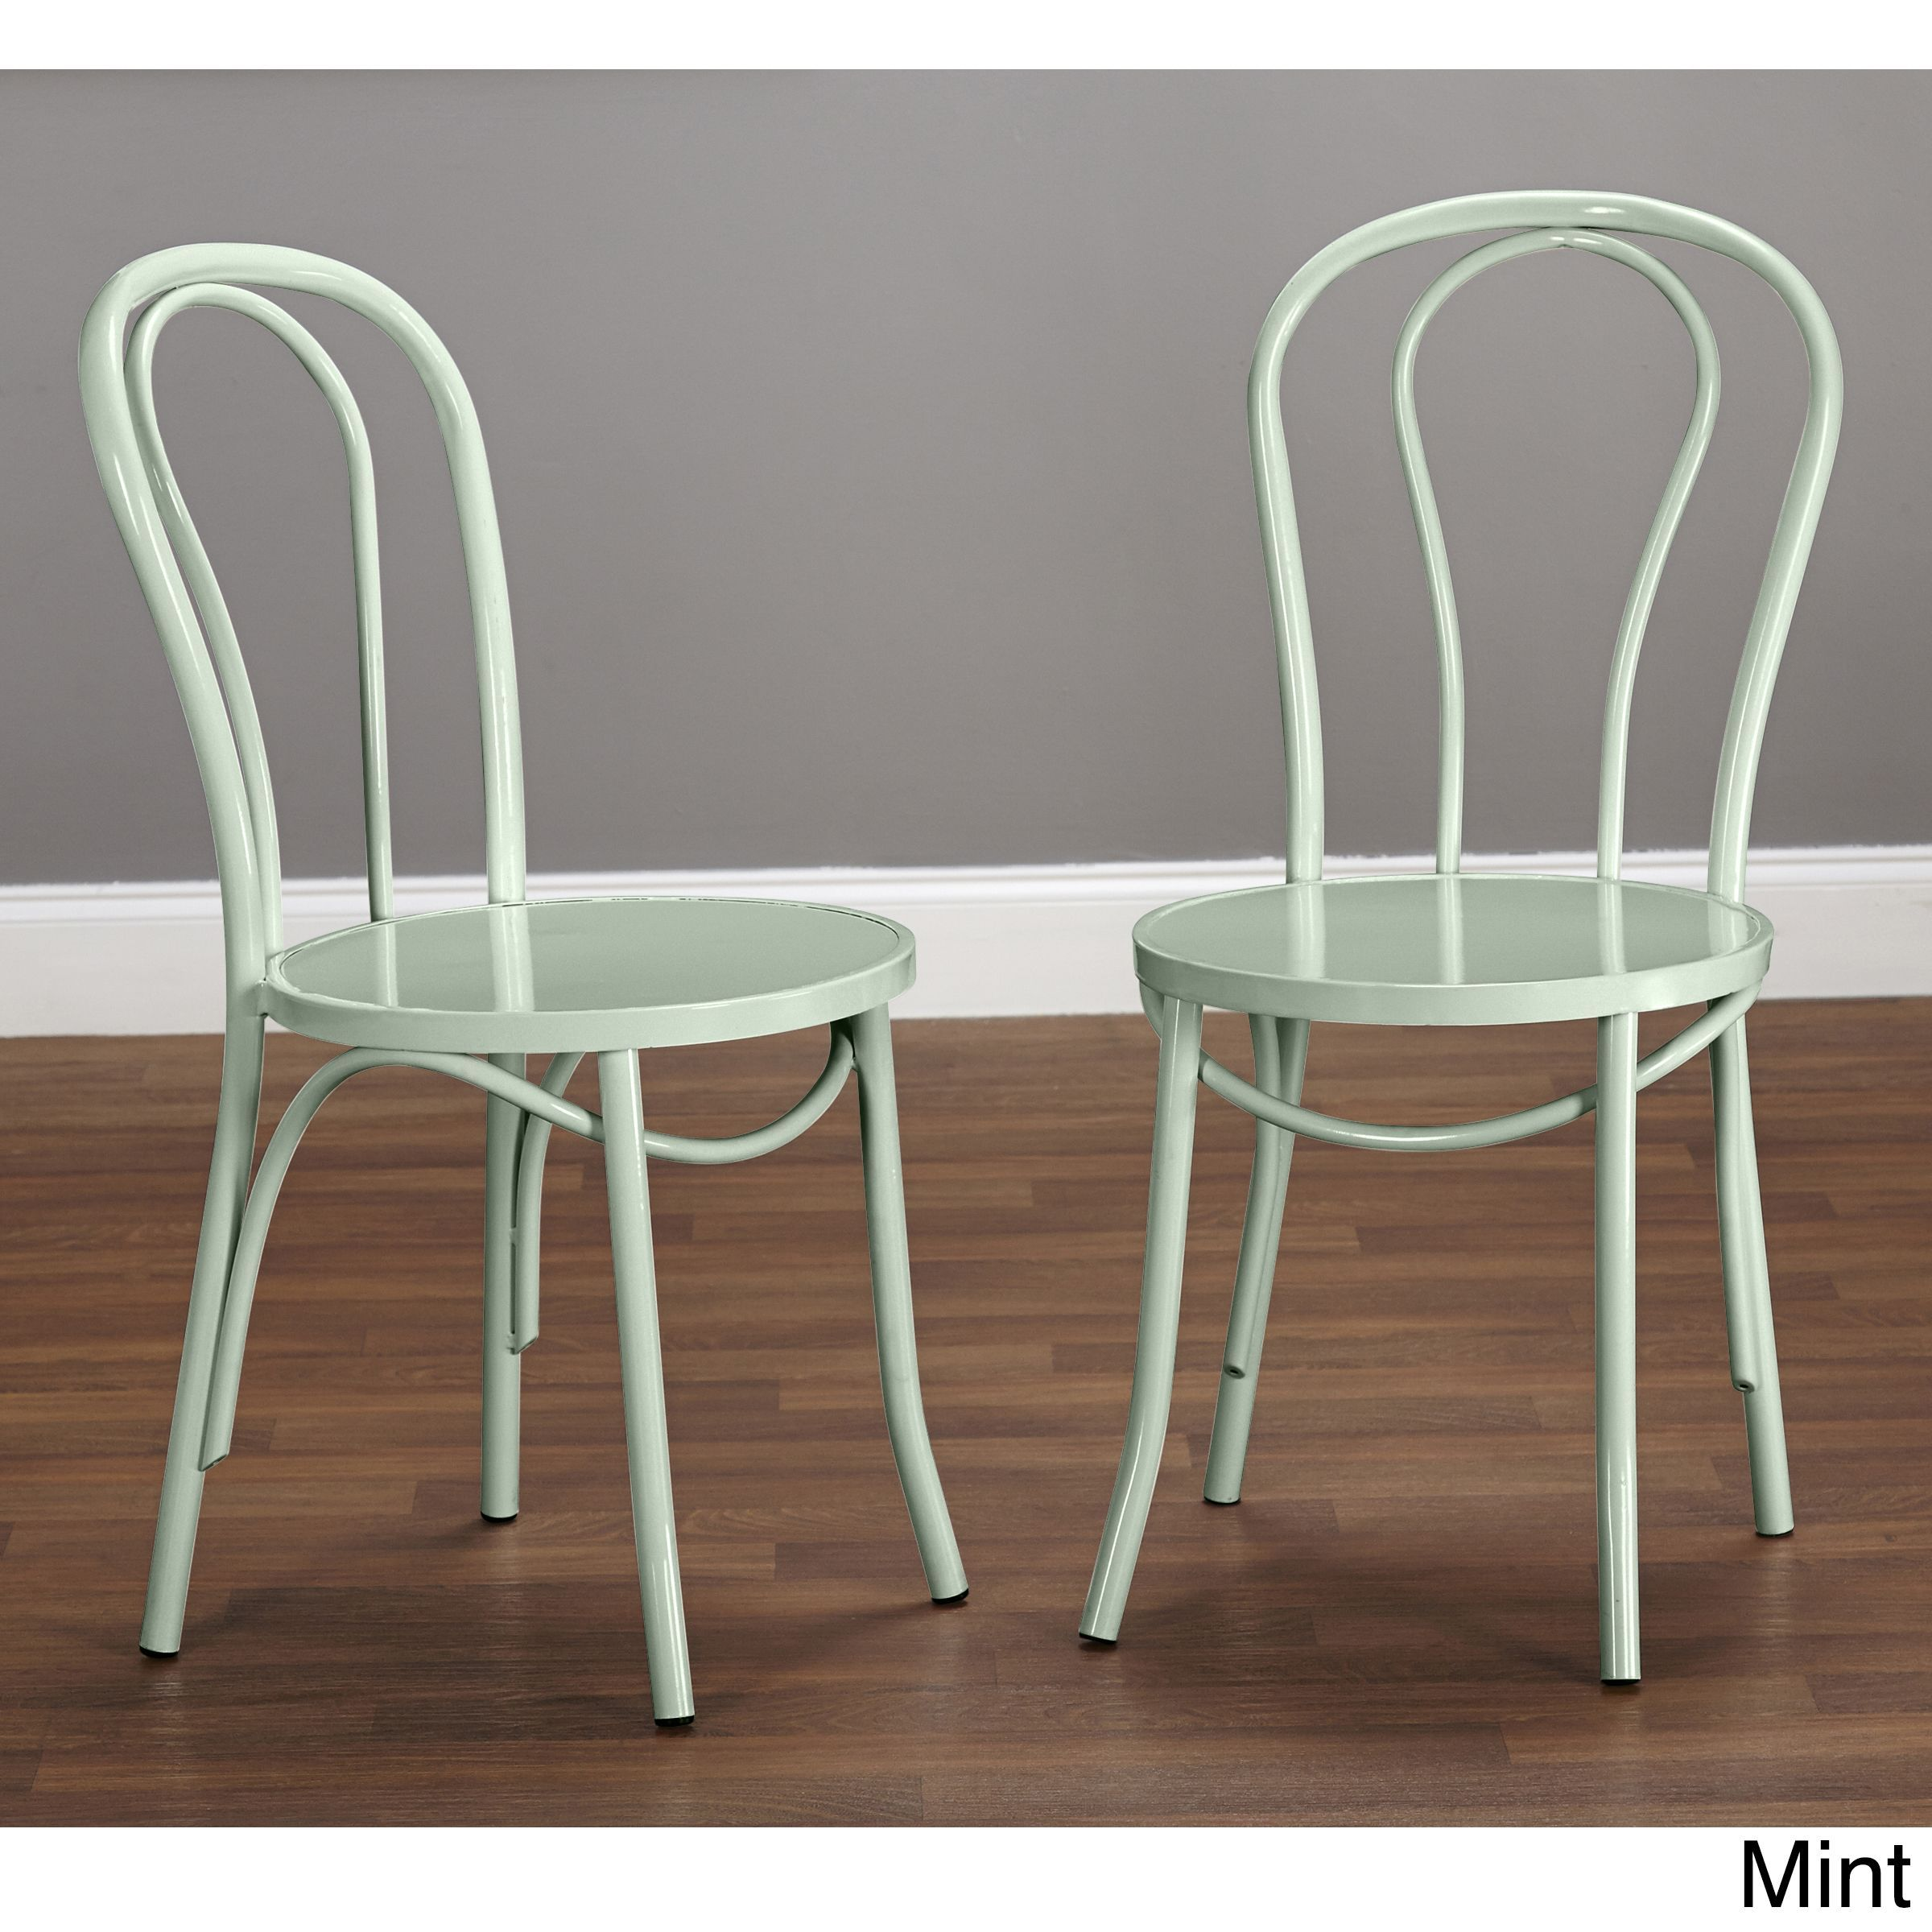 Simple Living Vintage Inspired Cafe Chairs Set Of 2 Mint Green Metal